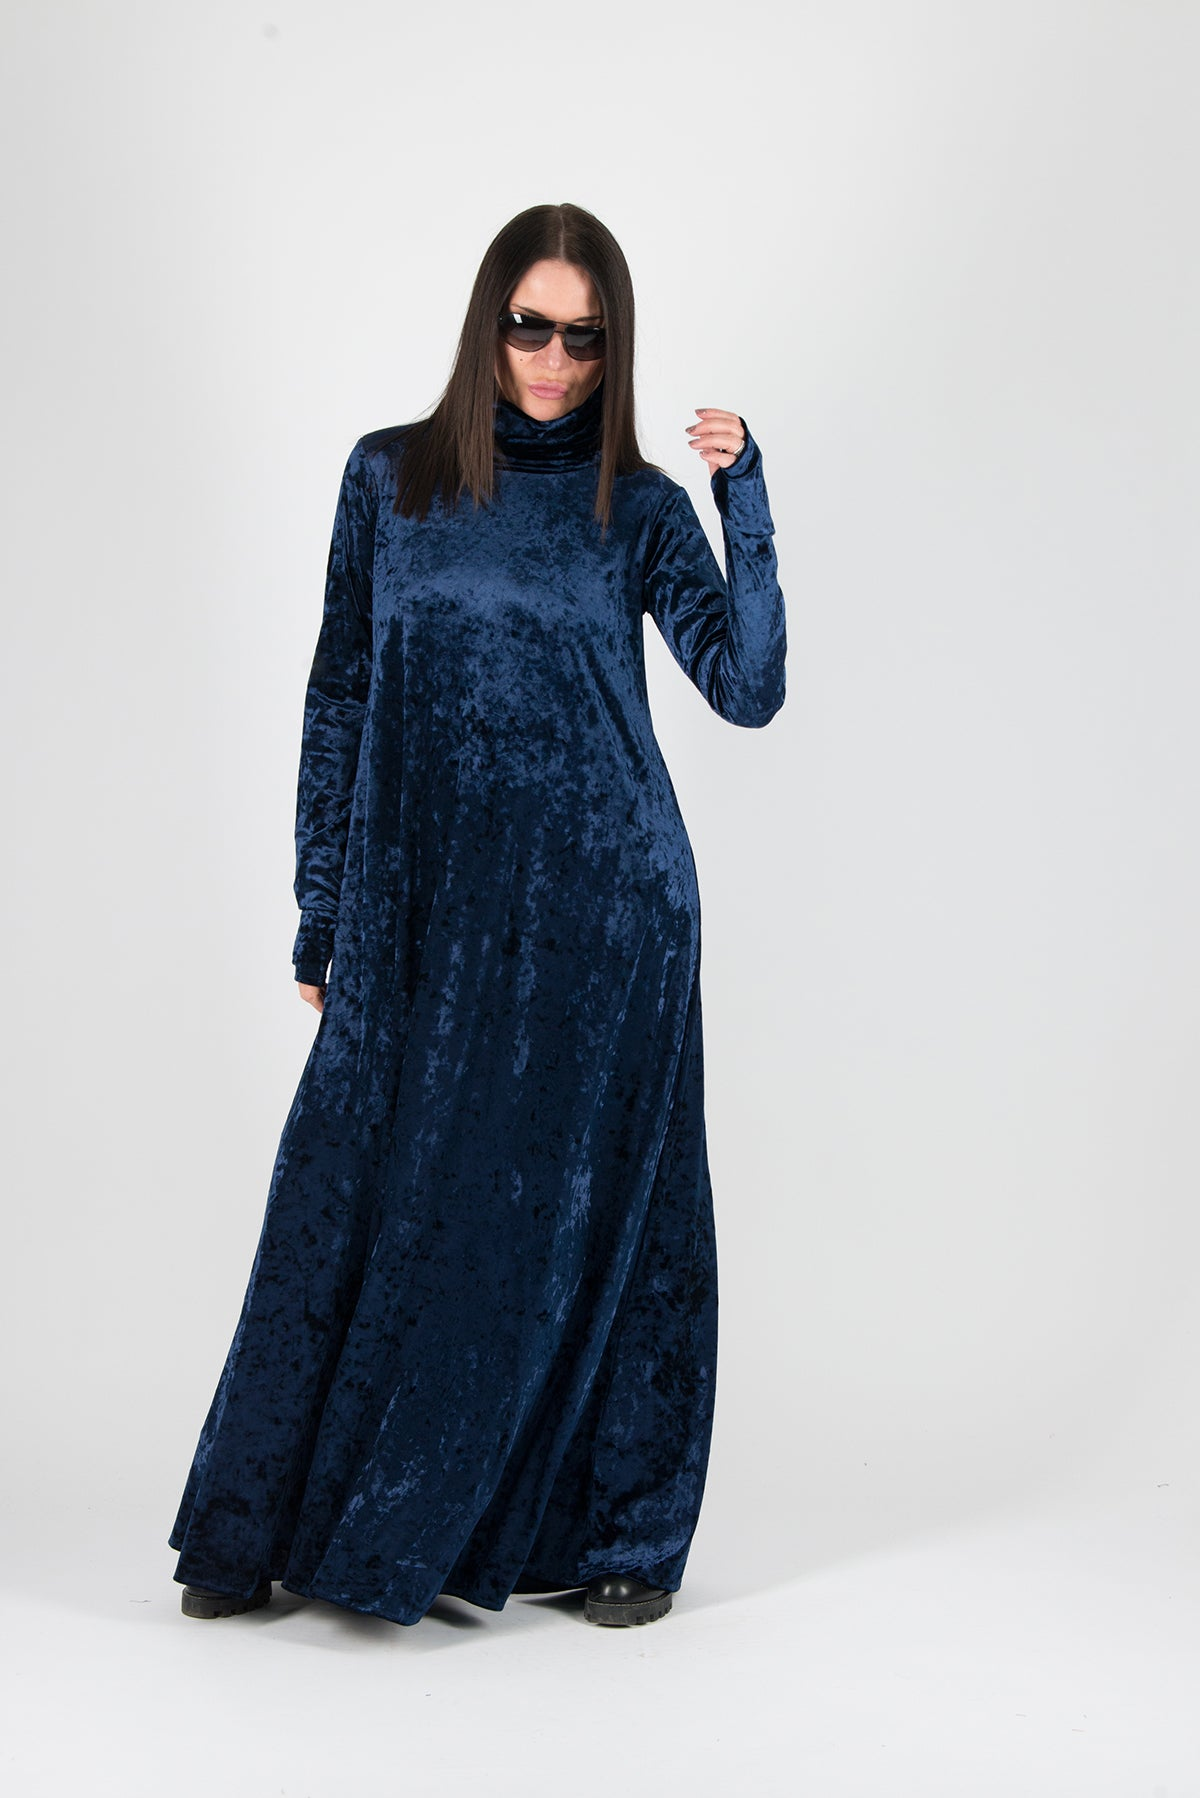 Turtleneck Navy Blue Velvet Long Dress - EUG FASHION